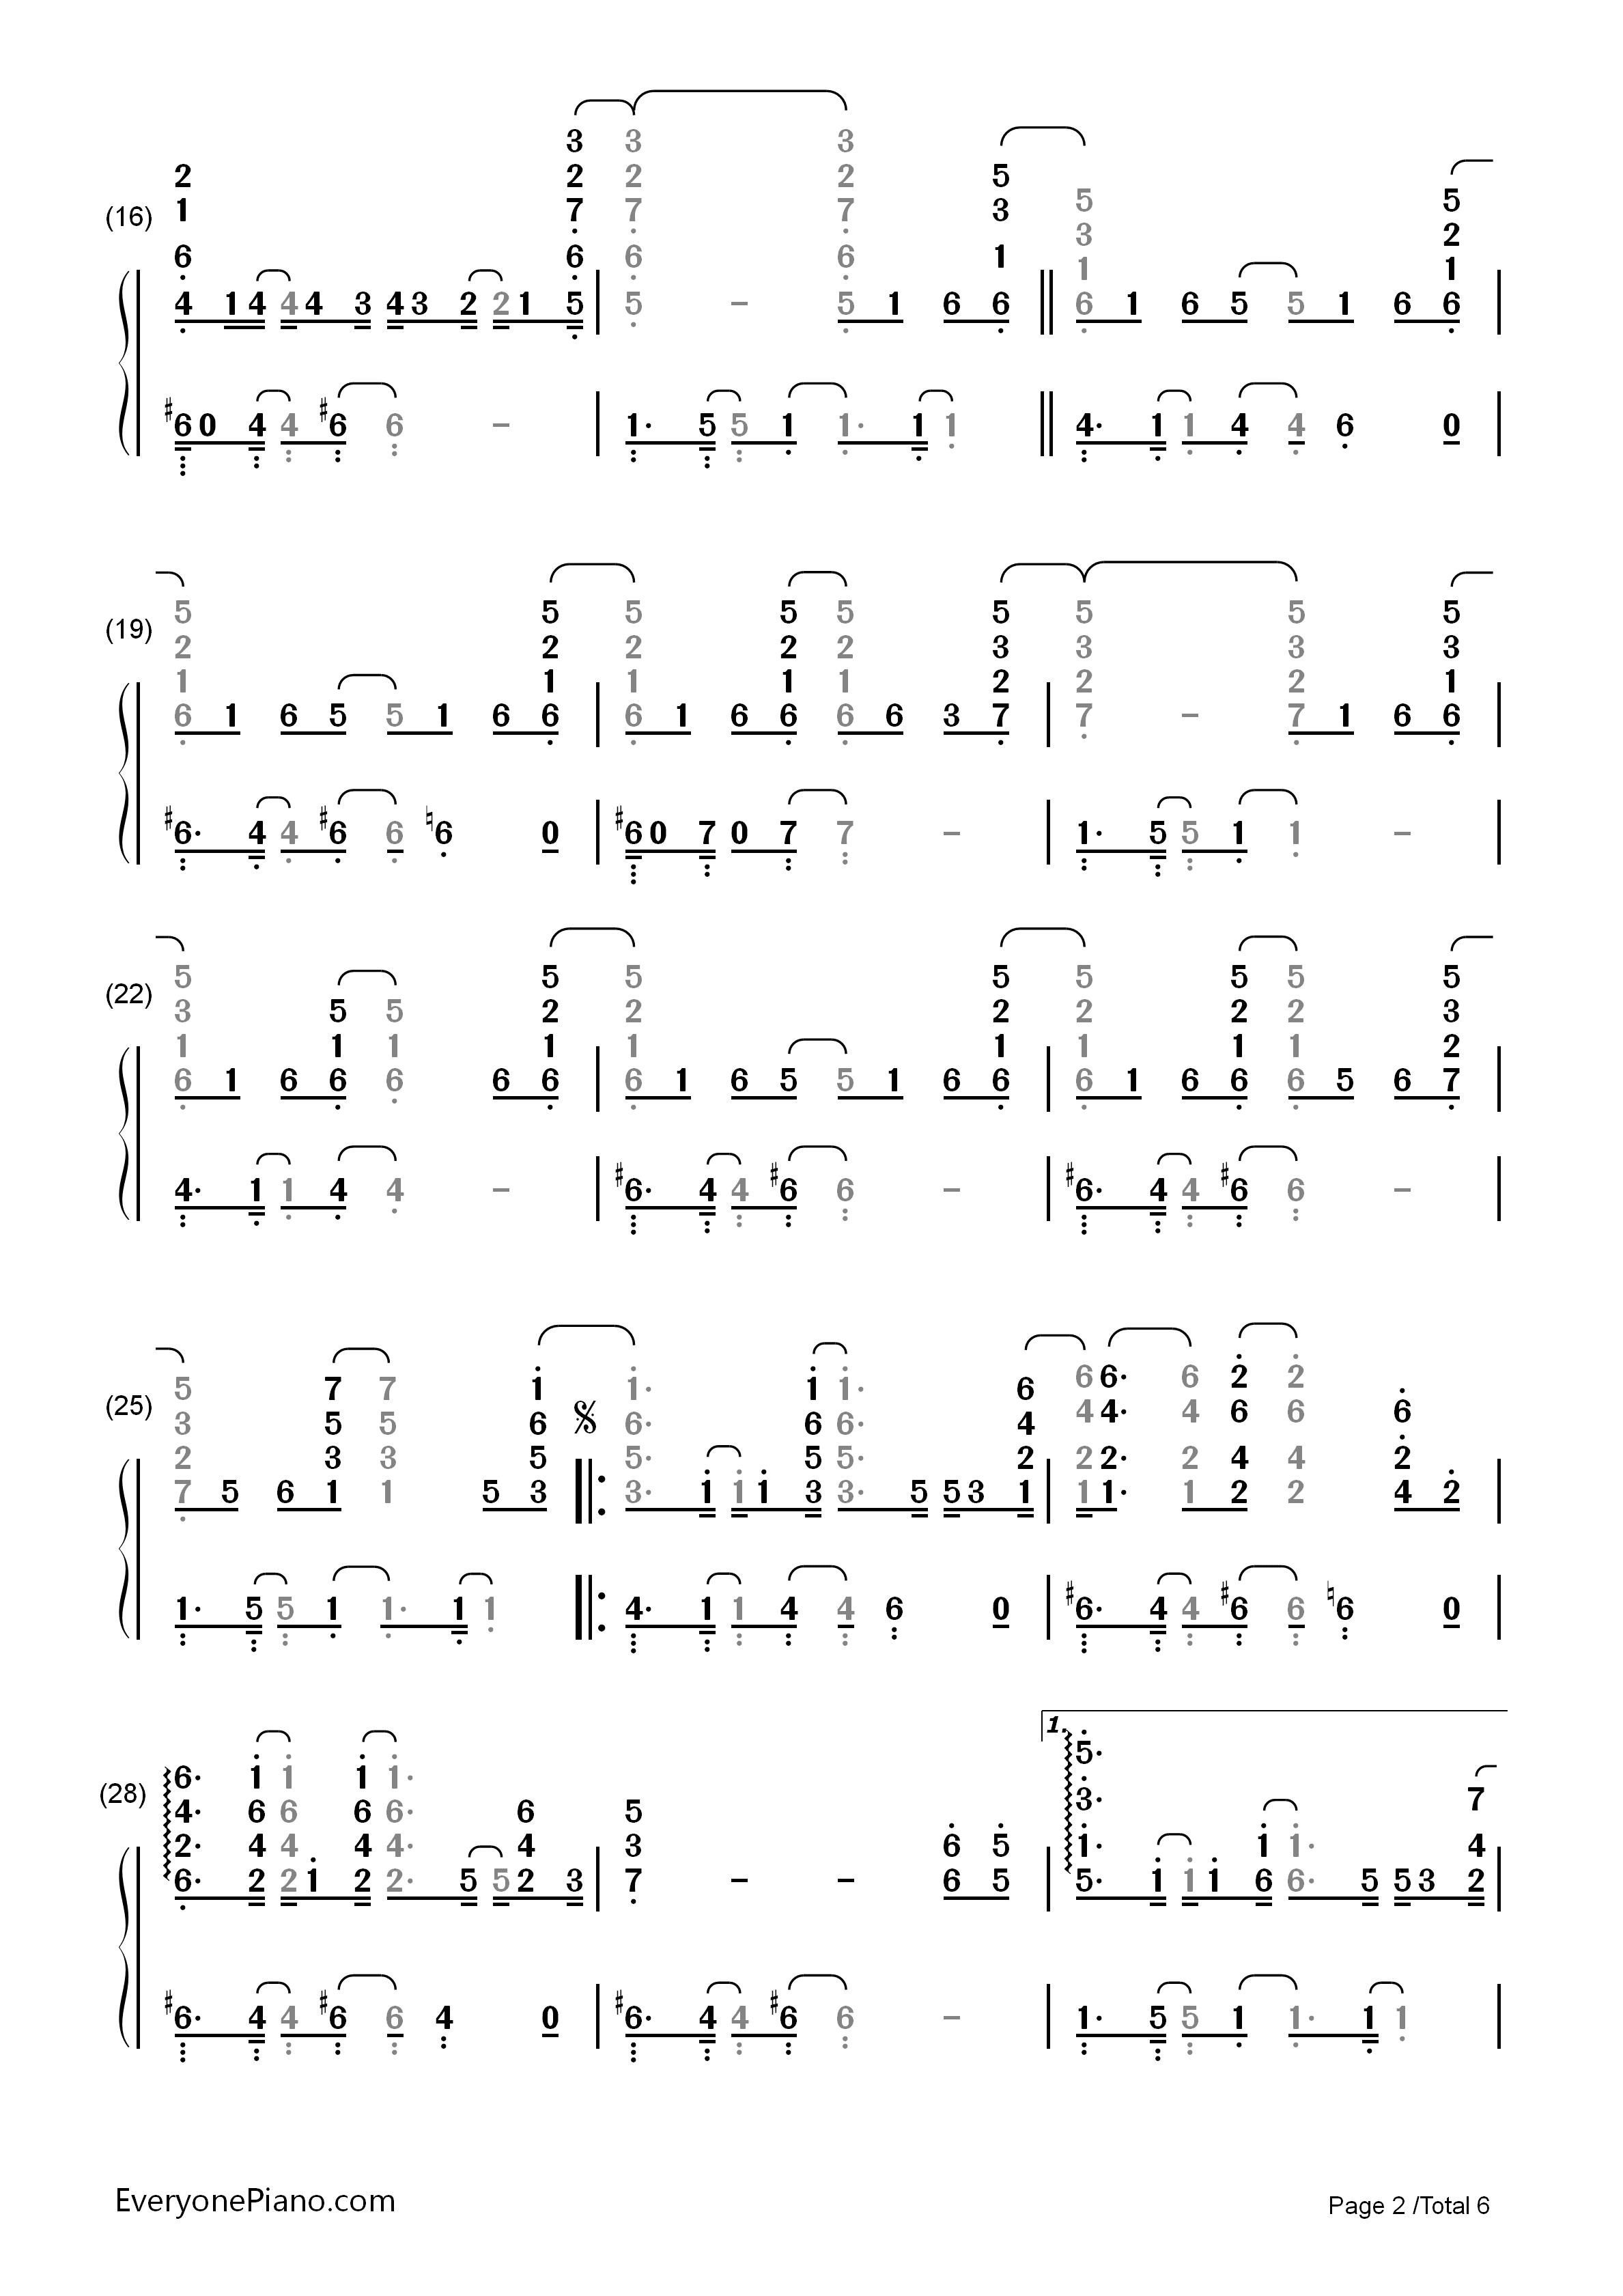 Ordinary people john legend numbered musical notation preview 2 listen now print sheet ordinary people john legend numbered musical notation preview 2 hexwebz Choice Image